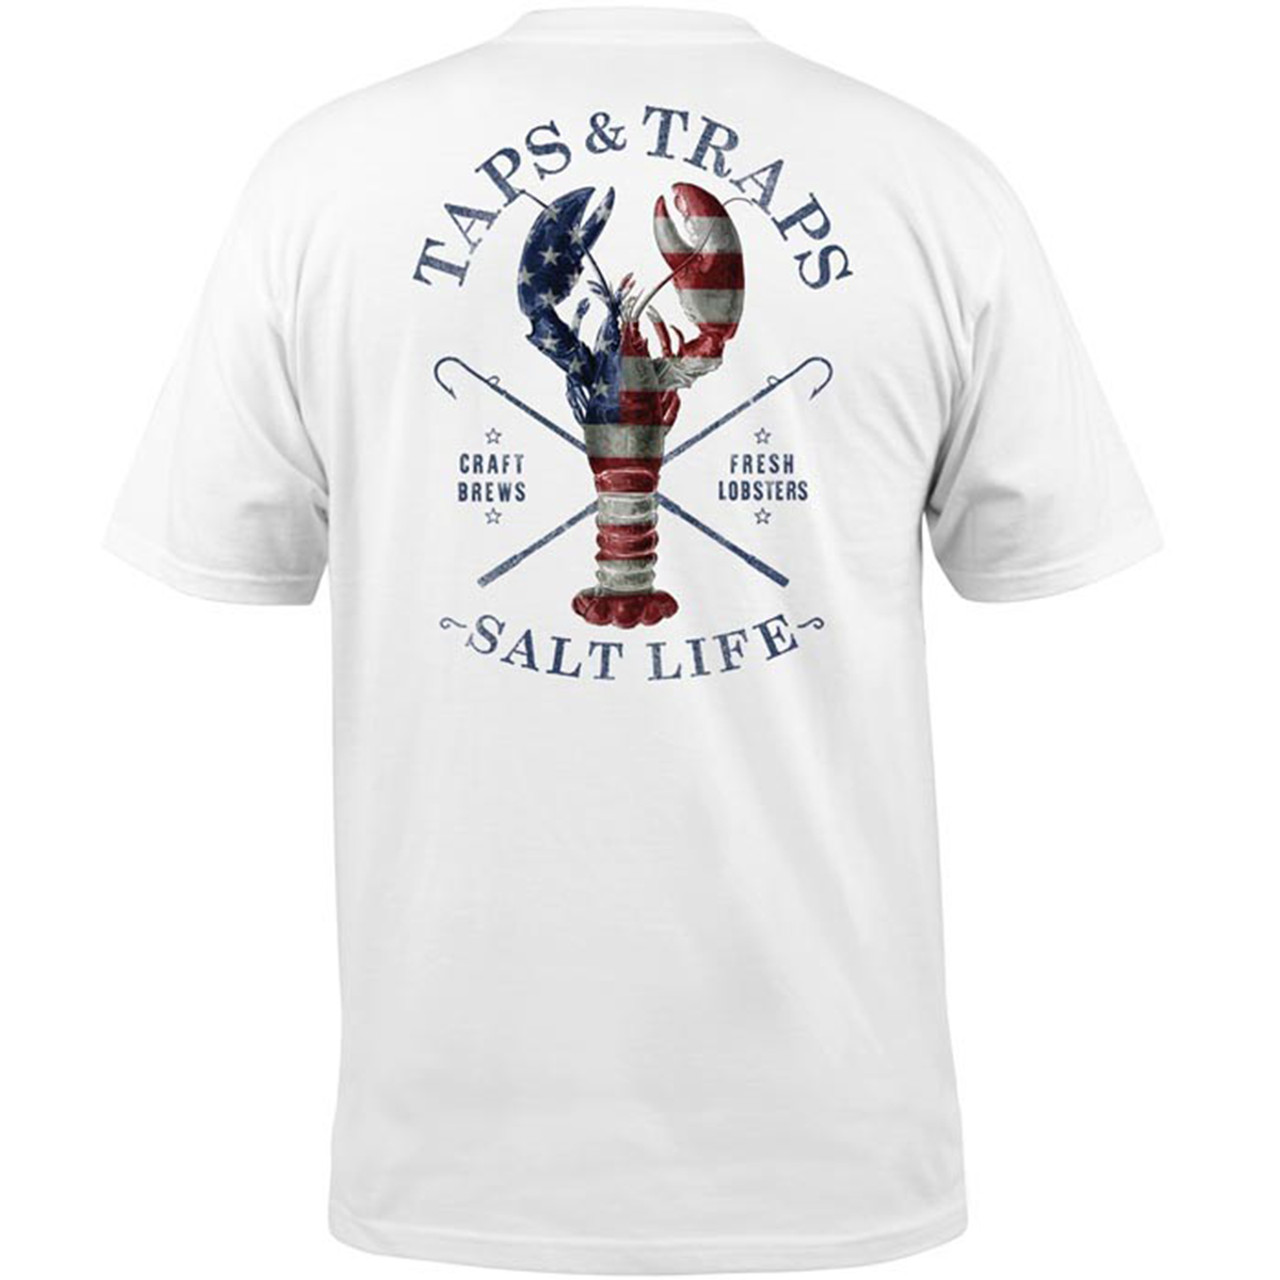 0fc9df0d Salt Life Taps and Traps Adult Short Sleeve Pocket T-shirt - Trenz Shirt  Company